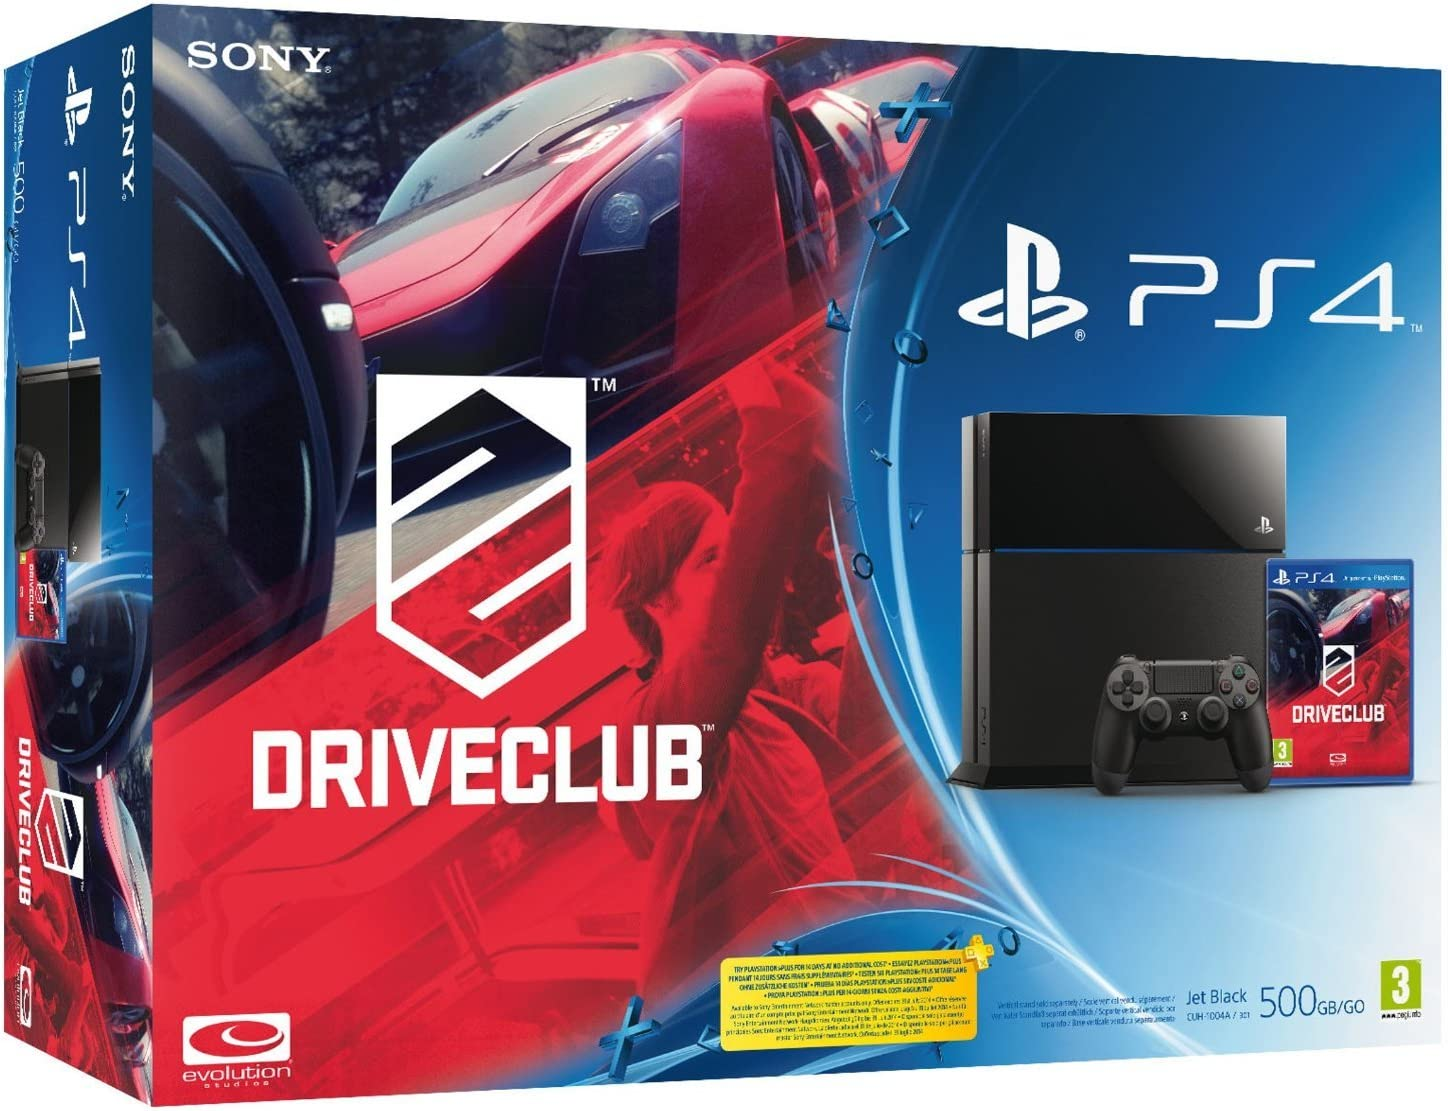 Sony PS4 500GB B Chassis, DRIVECLUB - juegos de PC (DRIVECLUB ...